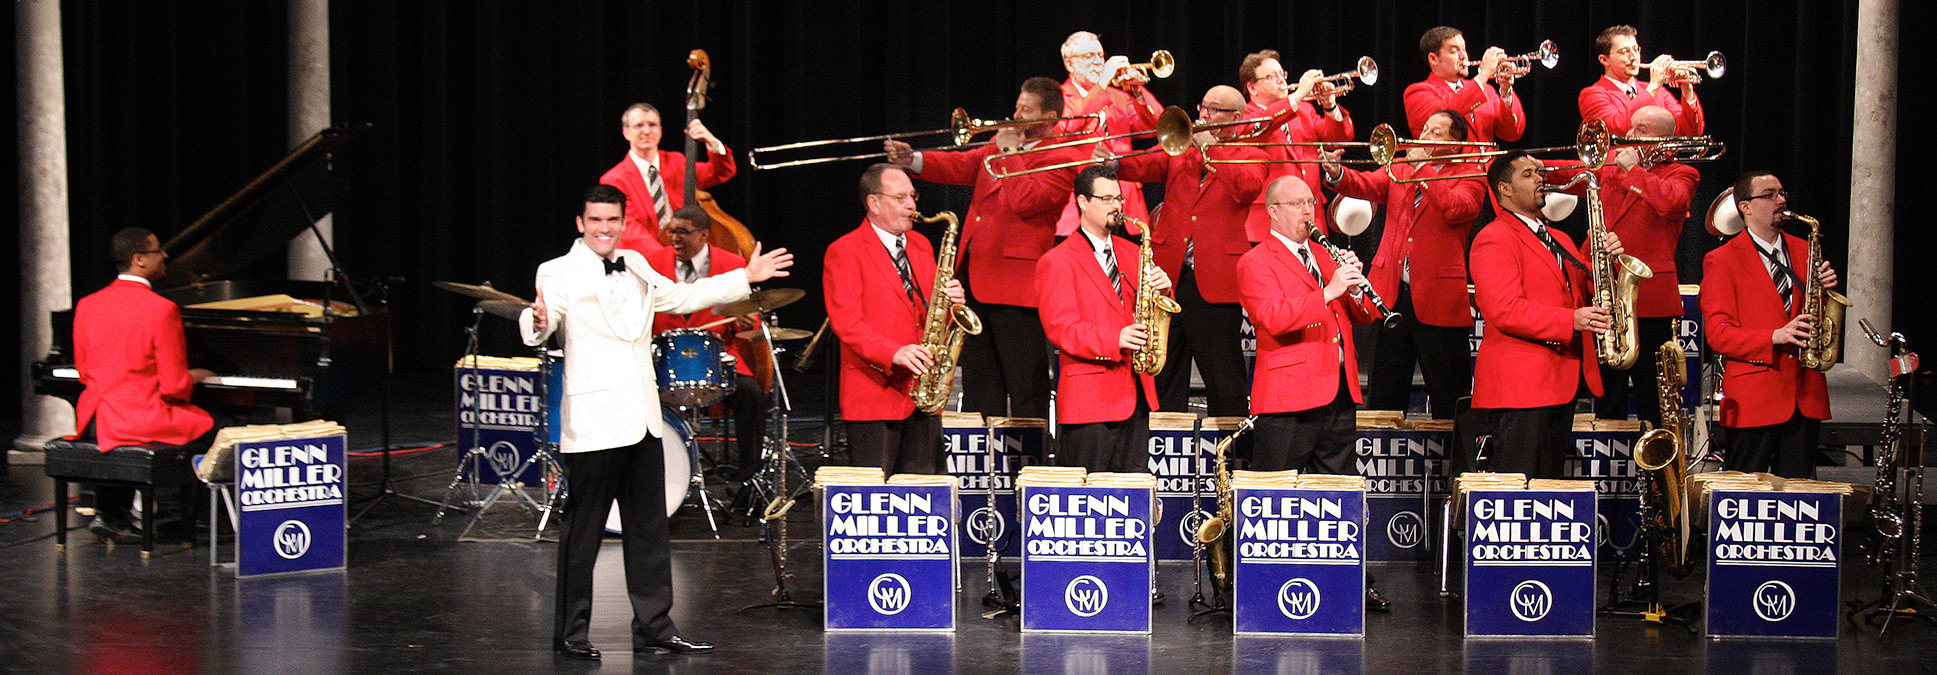 The Glen Miller Orchestra at the Marcus Center in Milwaukee